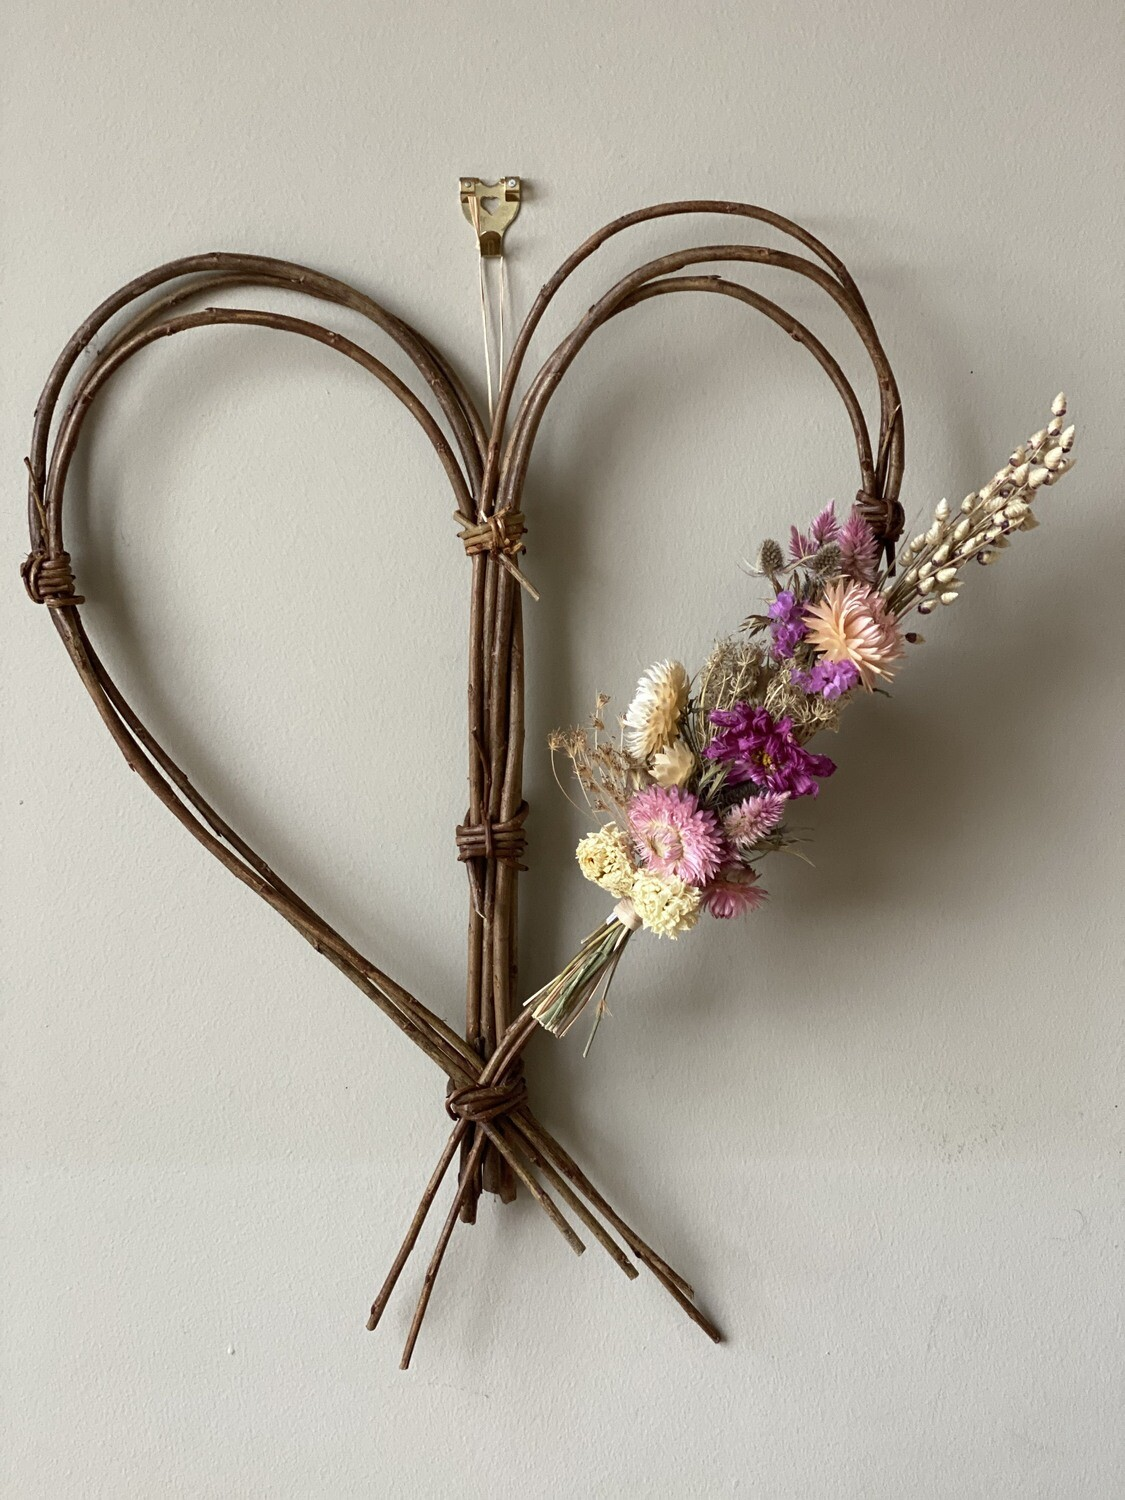 Handmade Heart Shaped Willow Wreath with Dried flowers